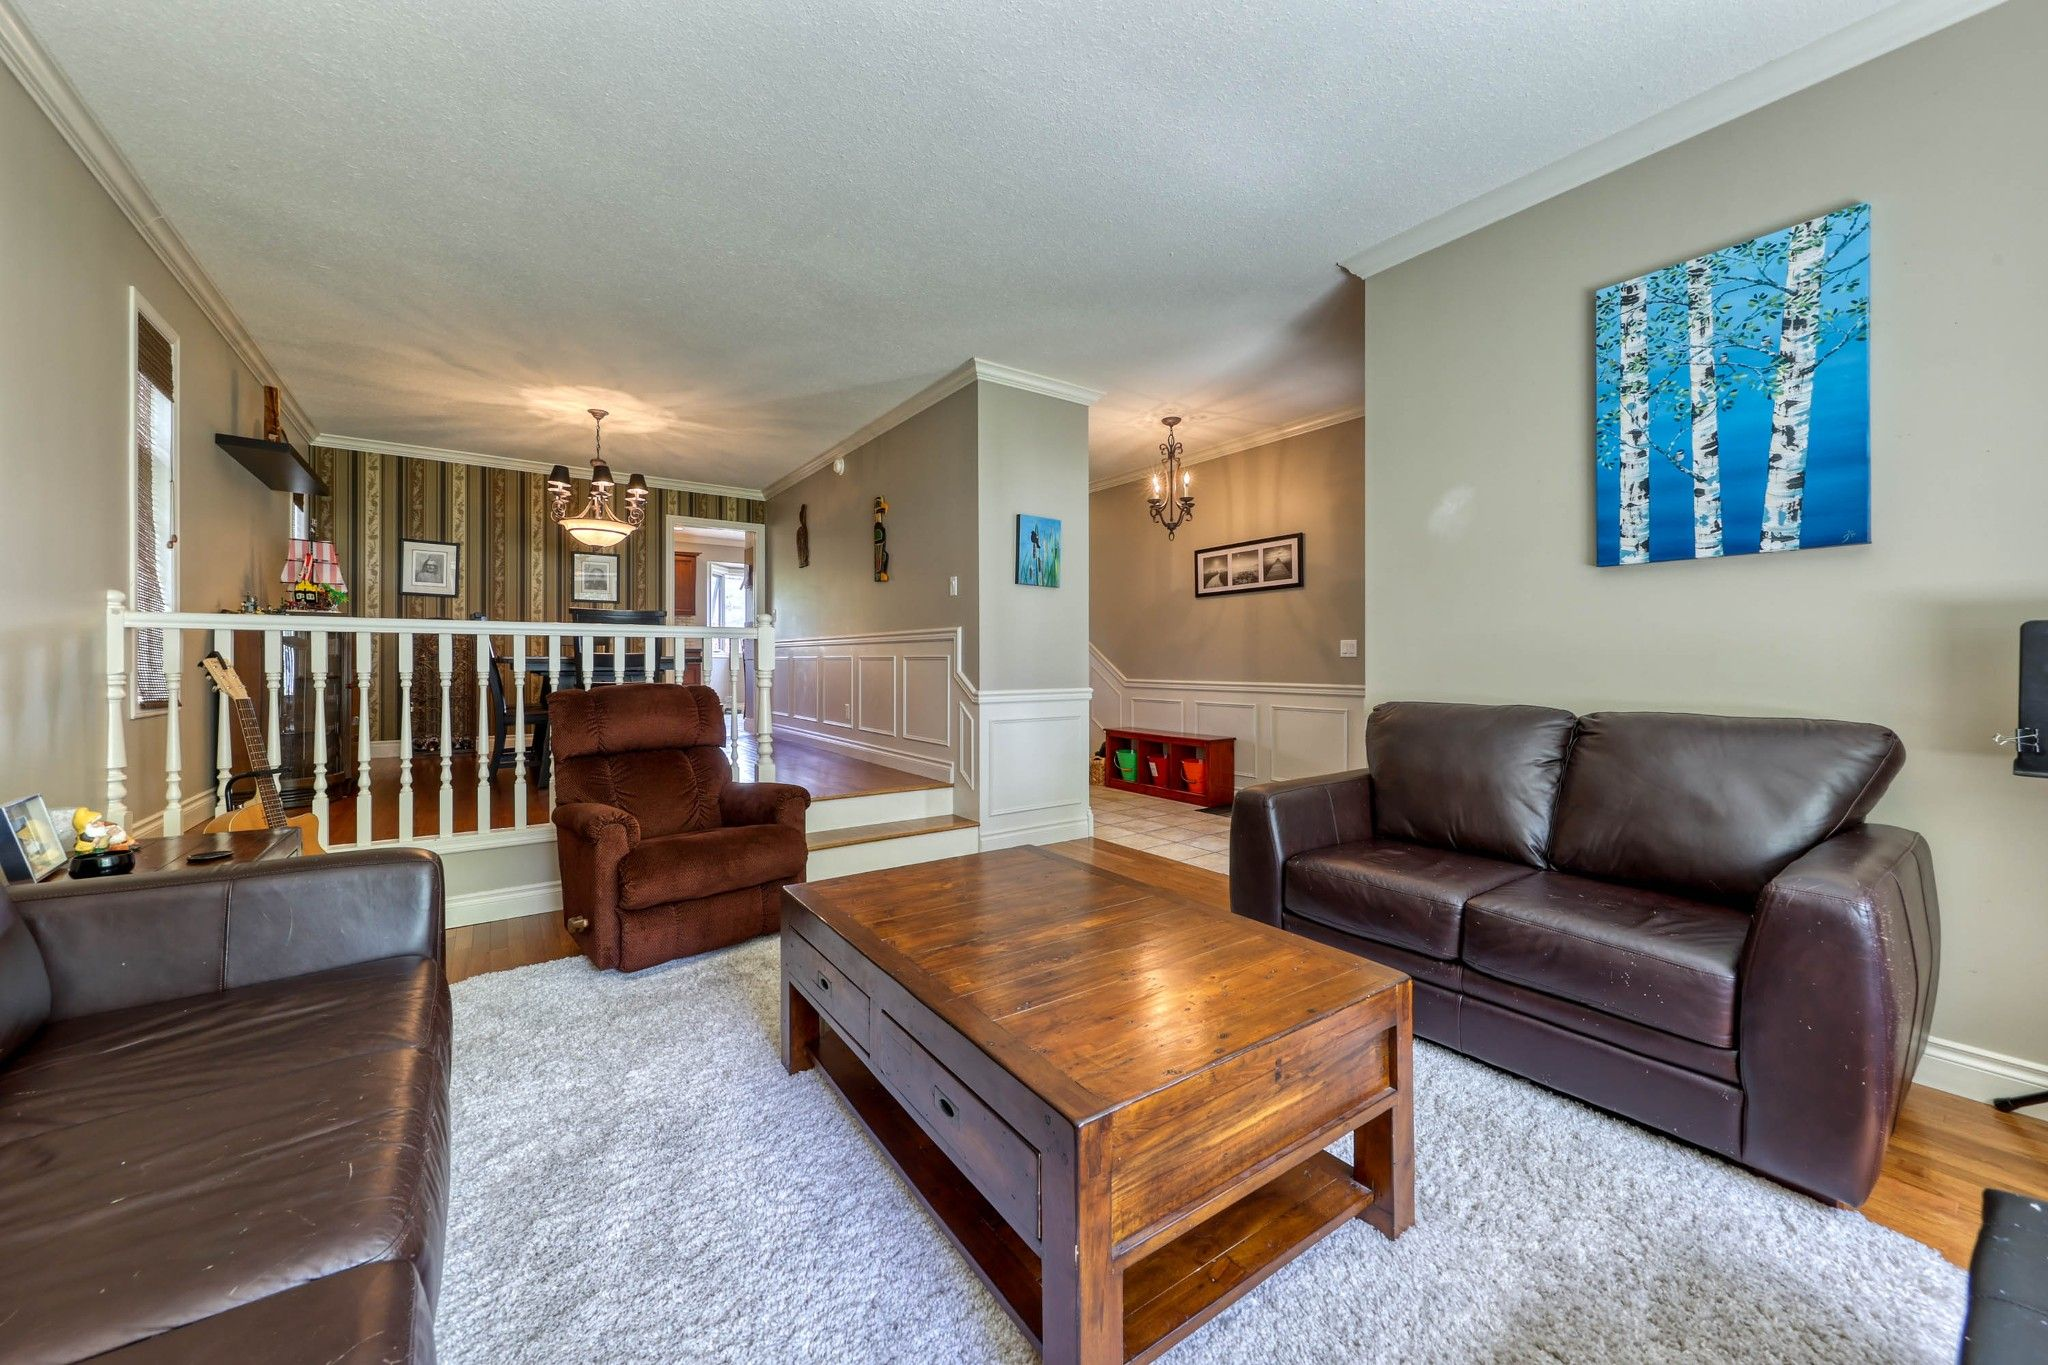 Photo 8: Photos: 2816 Capilano Drive in Kamloops: Juniper Heights House for sale : MLS®# 162002